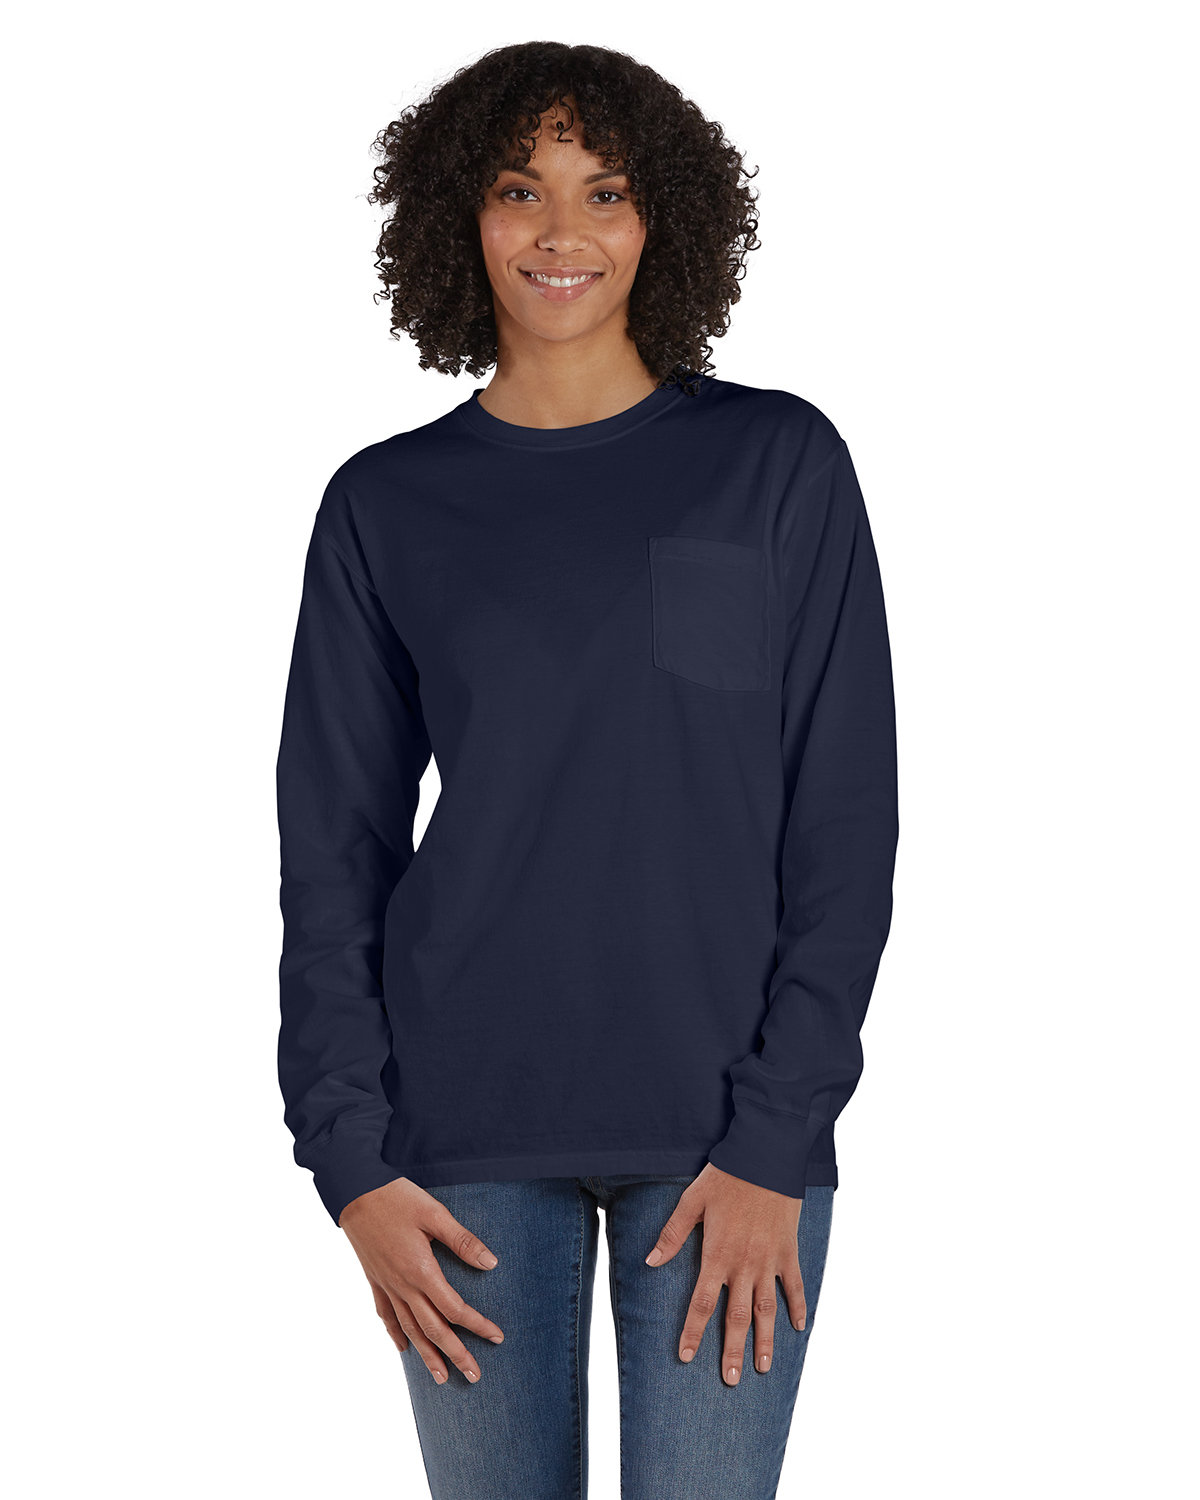 ComfortWash by Hanes Unisex Garment-Dyed Long-Sleeve T-Shirt with Pocket NAVY